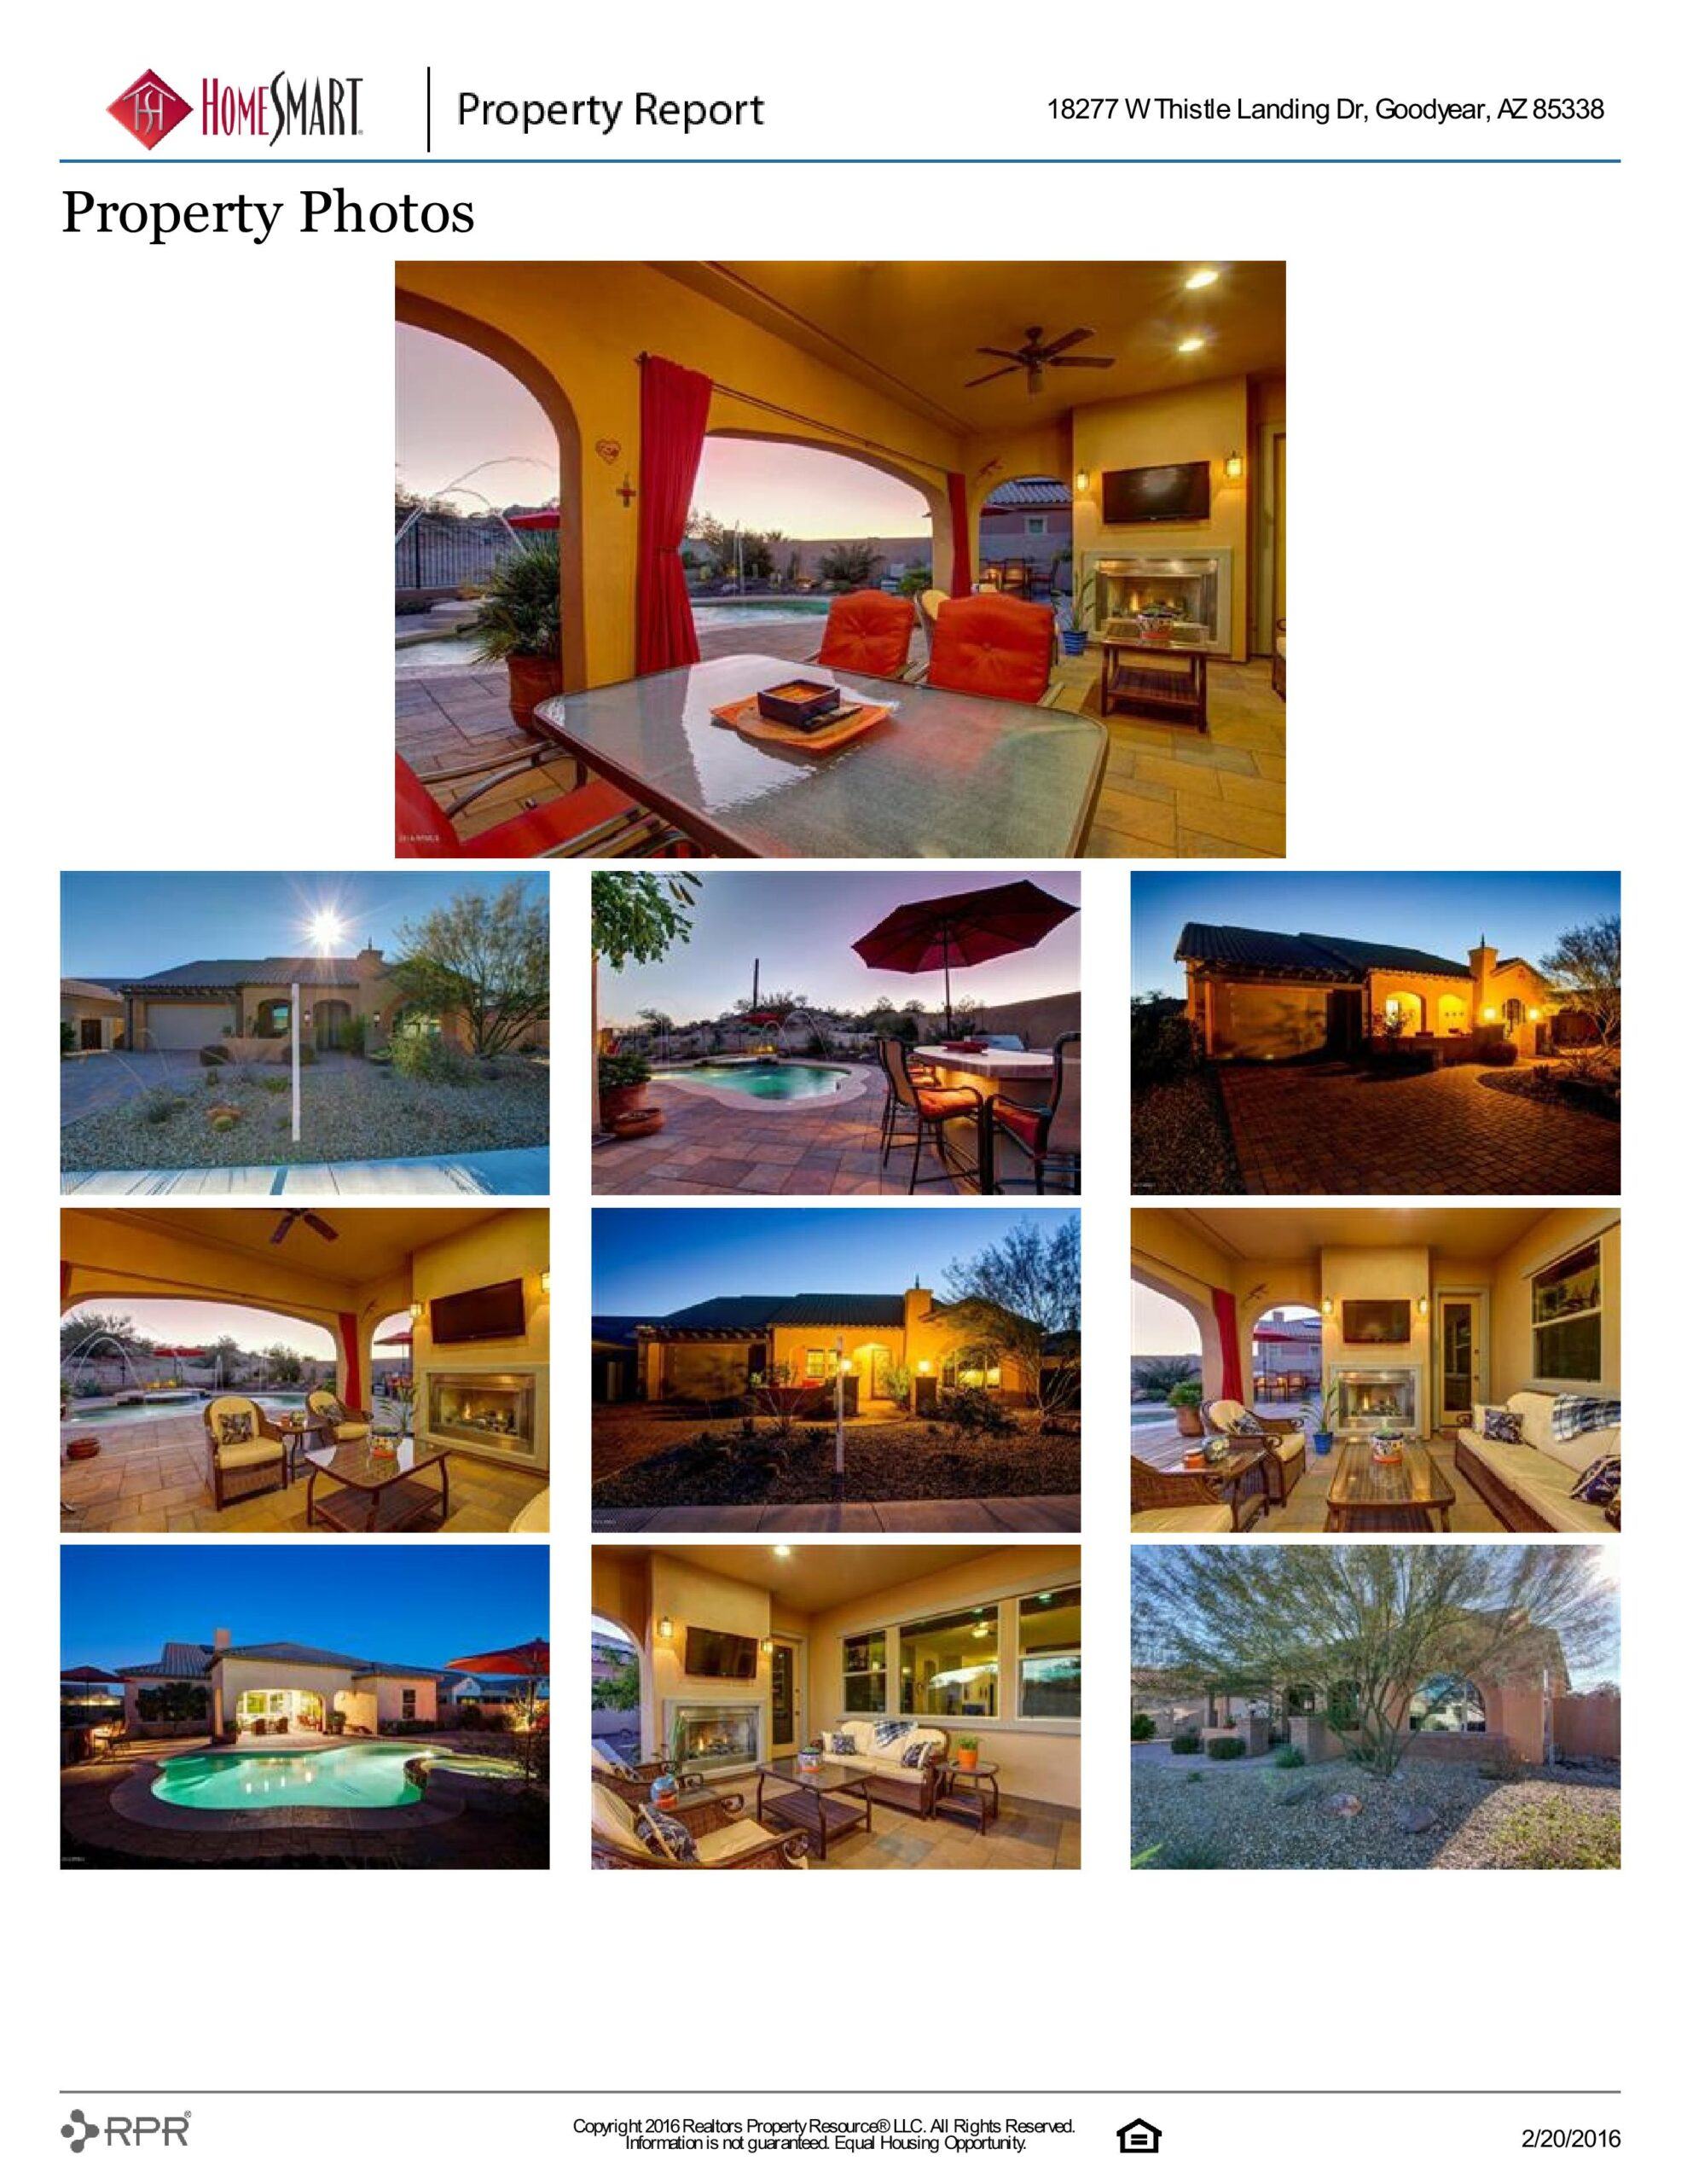 18277 W THISTLE LANDING DR PROPERTY REPORT-page-006